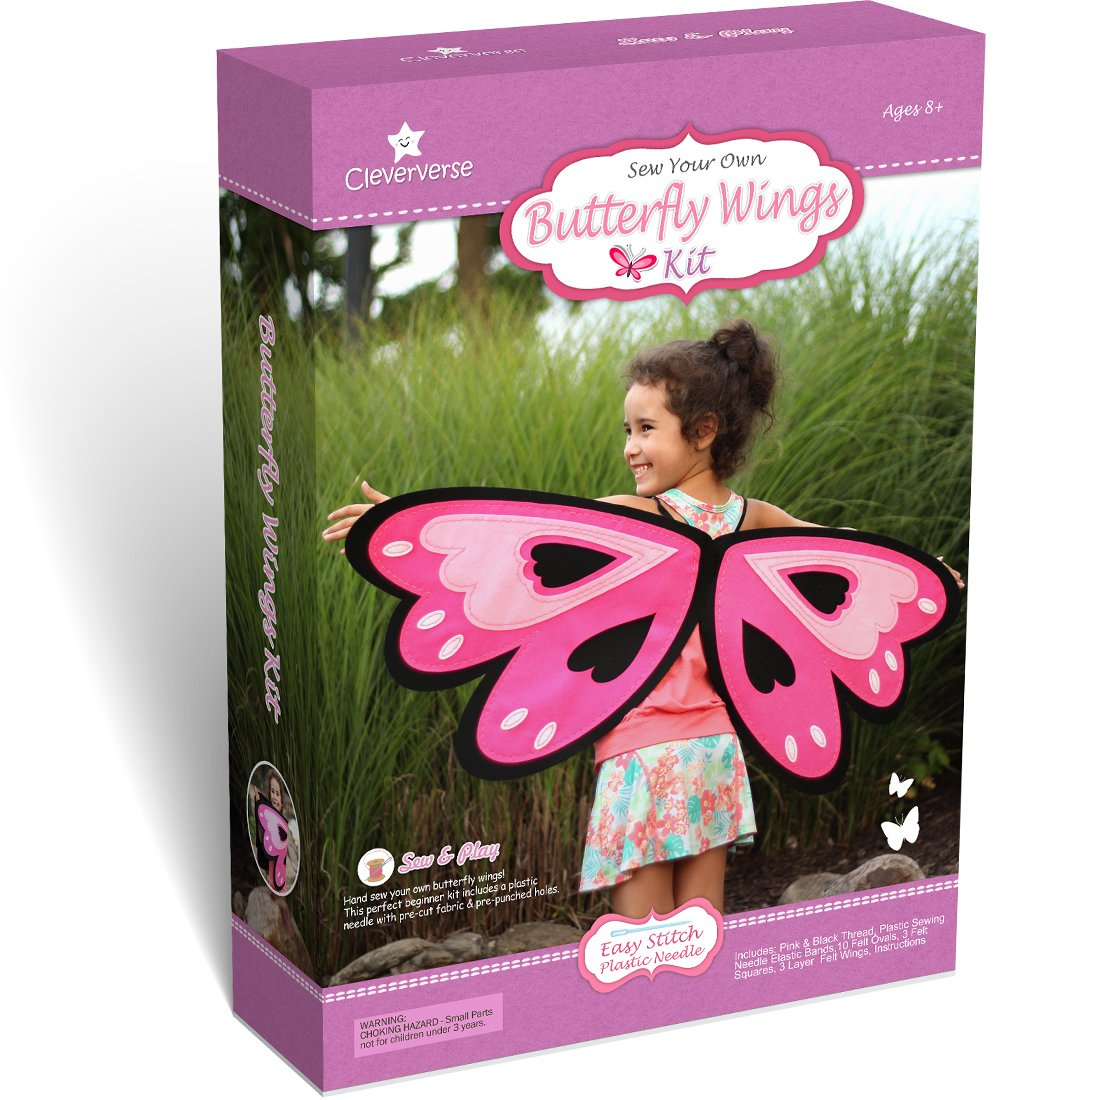 Cleververse Butterfly Wings Kids Sewing Kit Craft For Girls Ages 8+